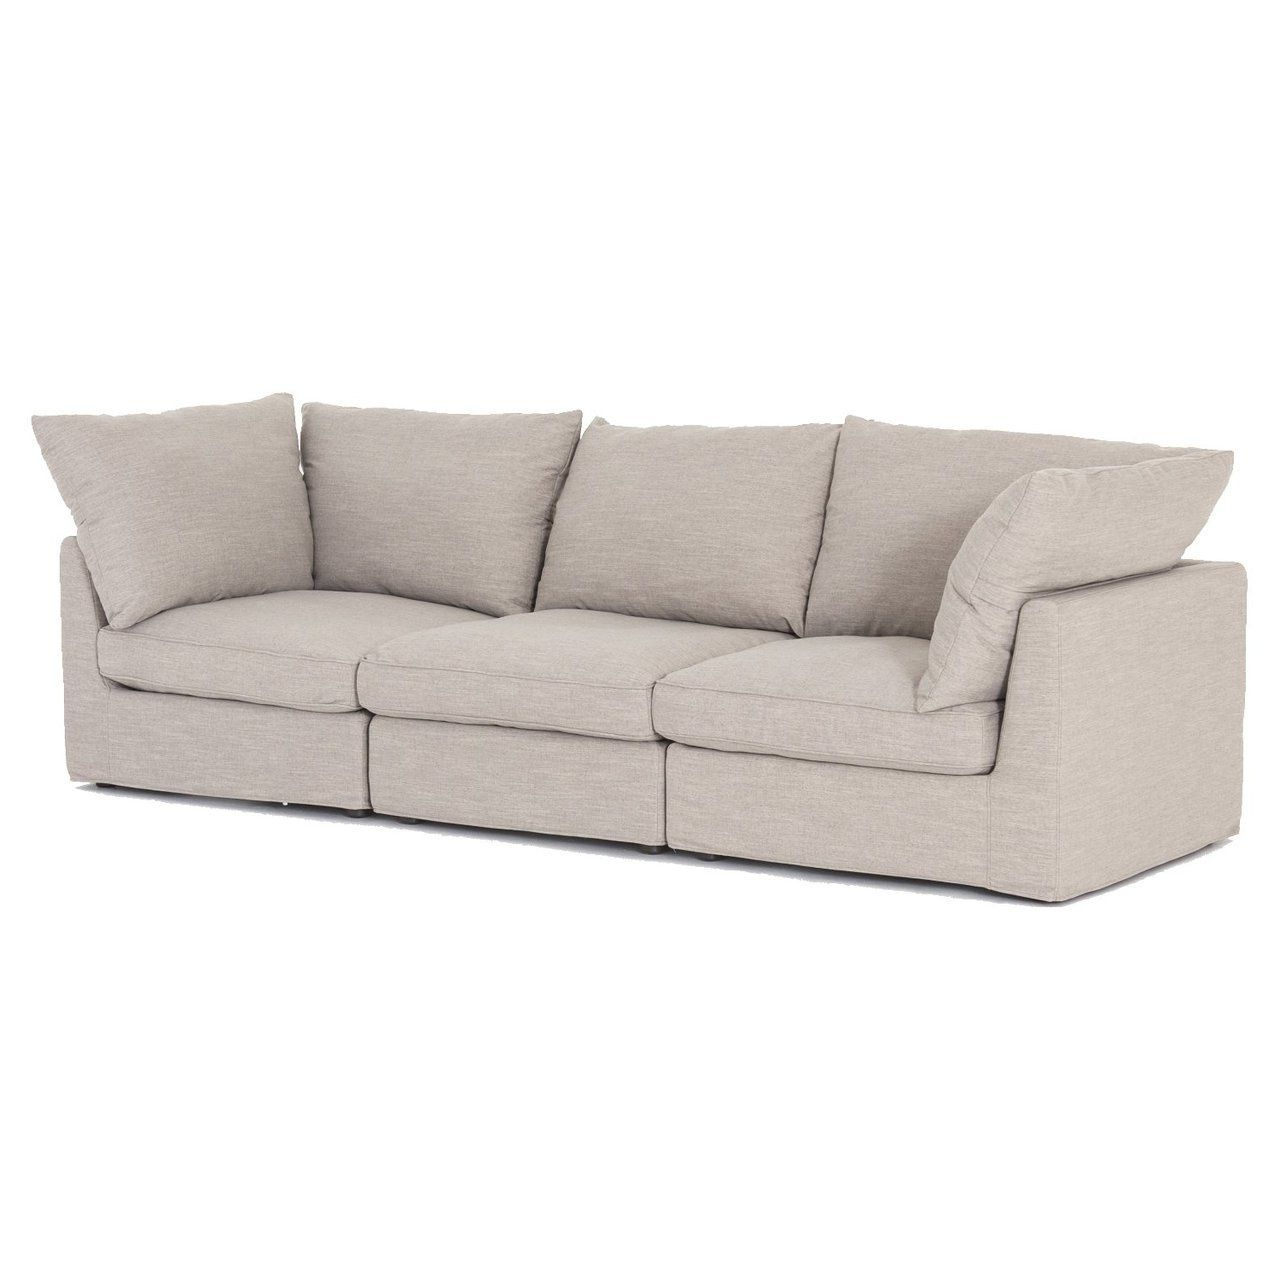 Well Known Harper Foam 3 Piece Sectional W/raf Chaise Inside Harper Foam 3 Piece Sectionals With Raf Chaise (View 18 of 20)